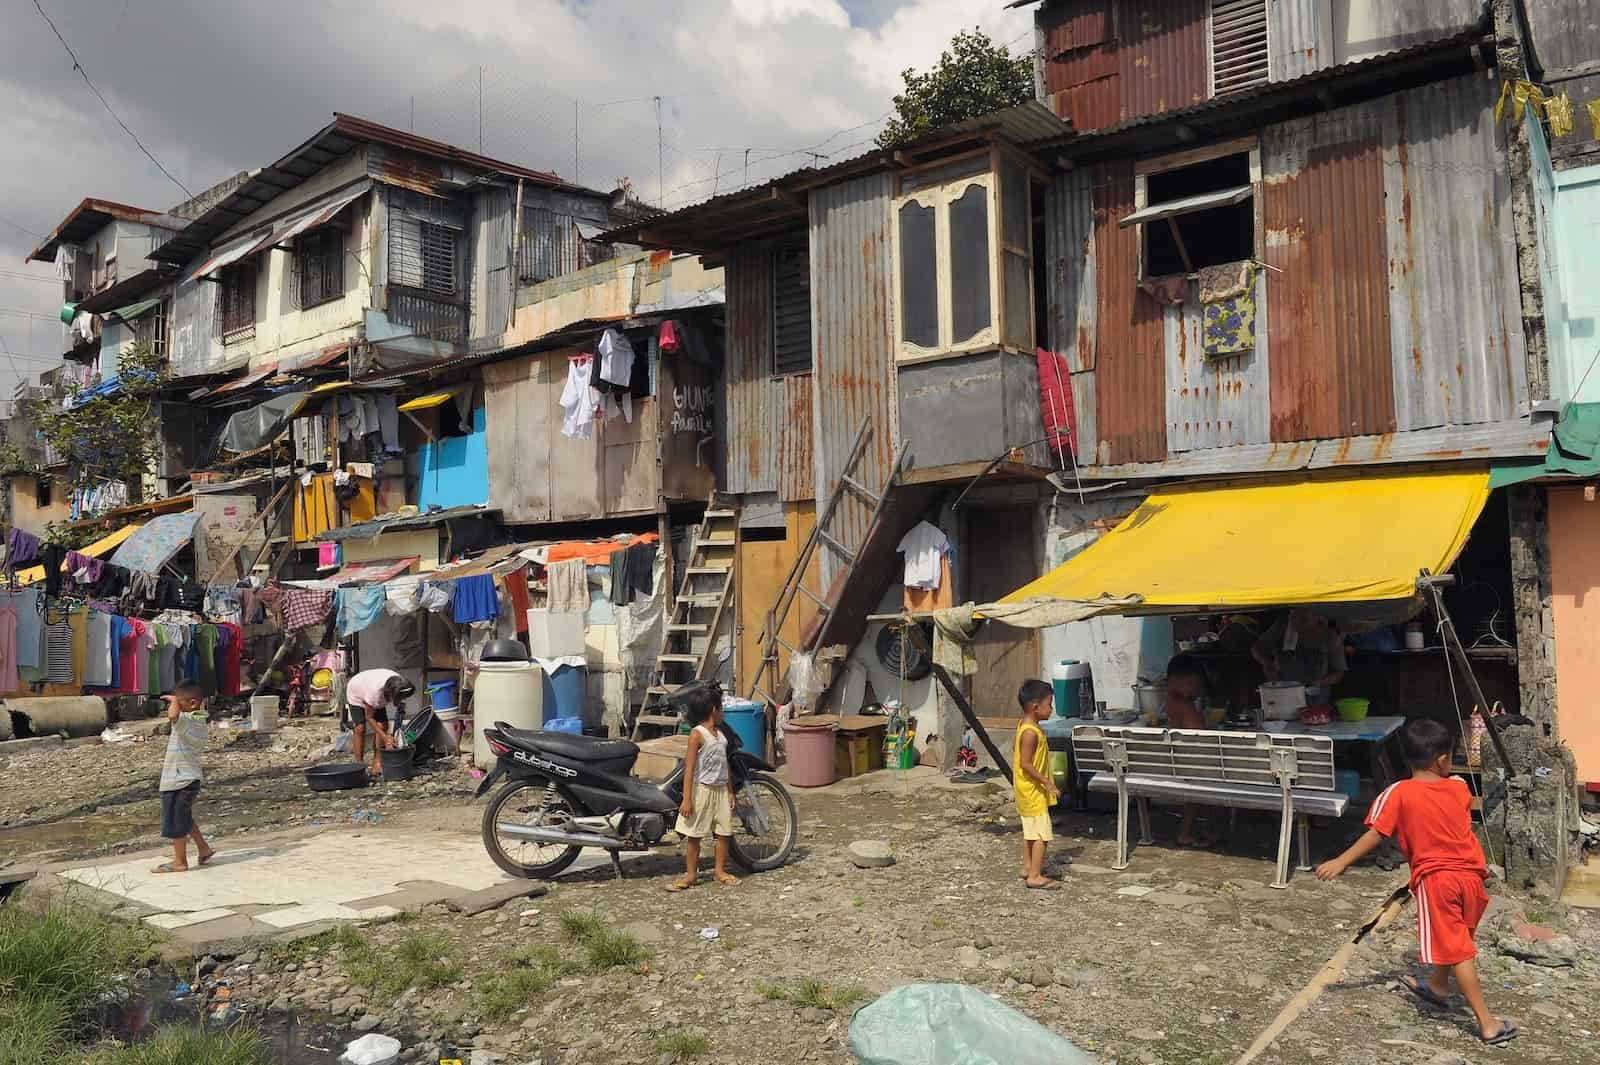 A row of makeshift homes on a street, several stories high, made from metal sheets and wood, showing poverty in Asia.